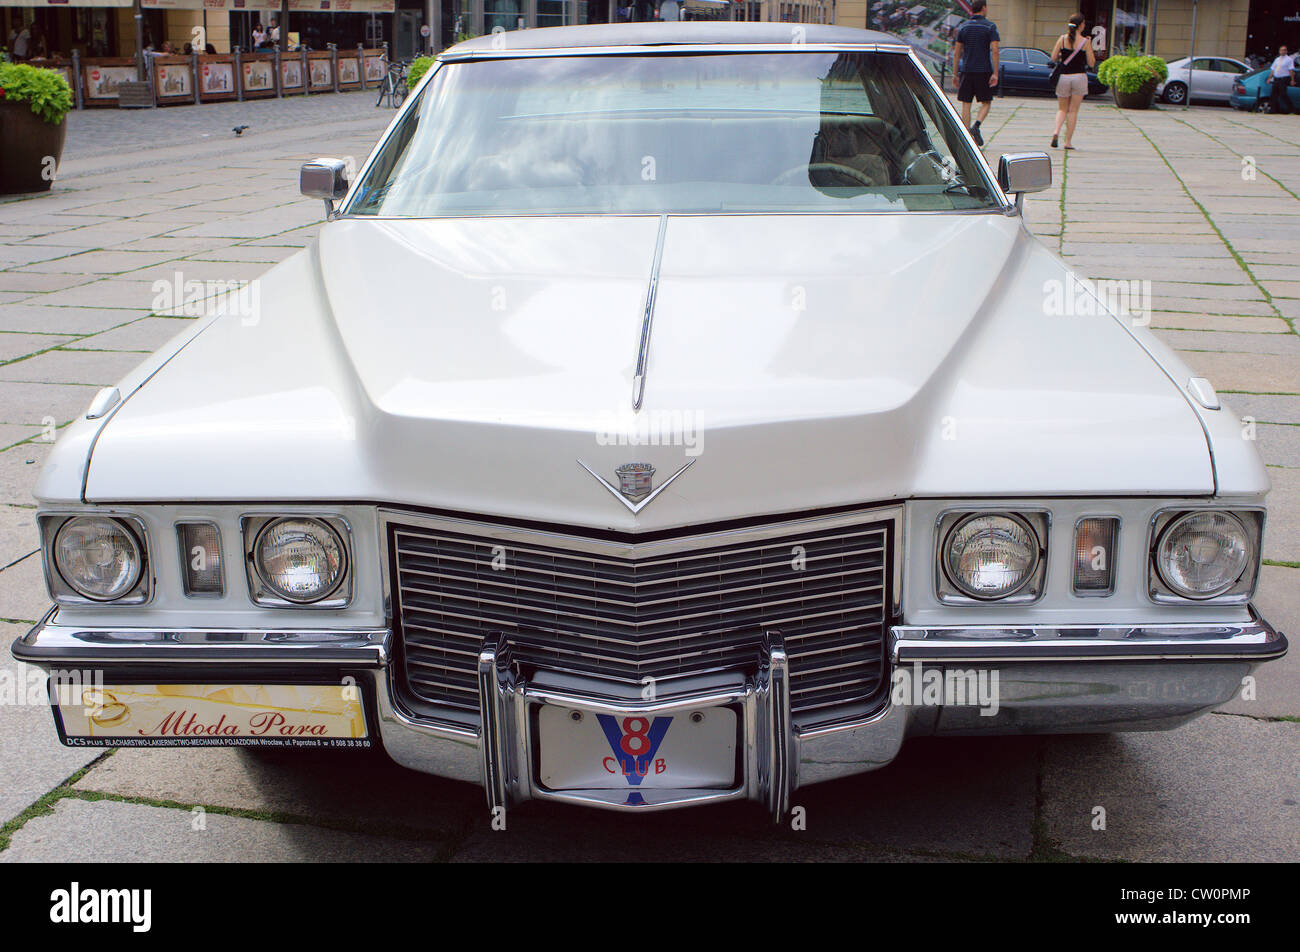 White Cadillac Stock Photos Images Alamy 50s V8 Engine Deville From 1972 Image